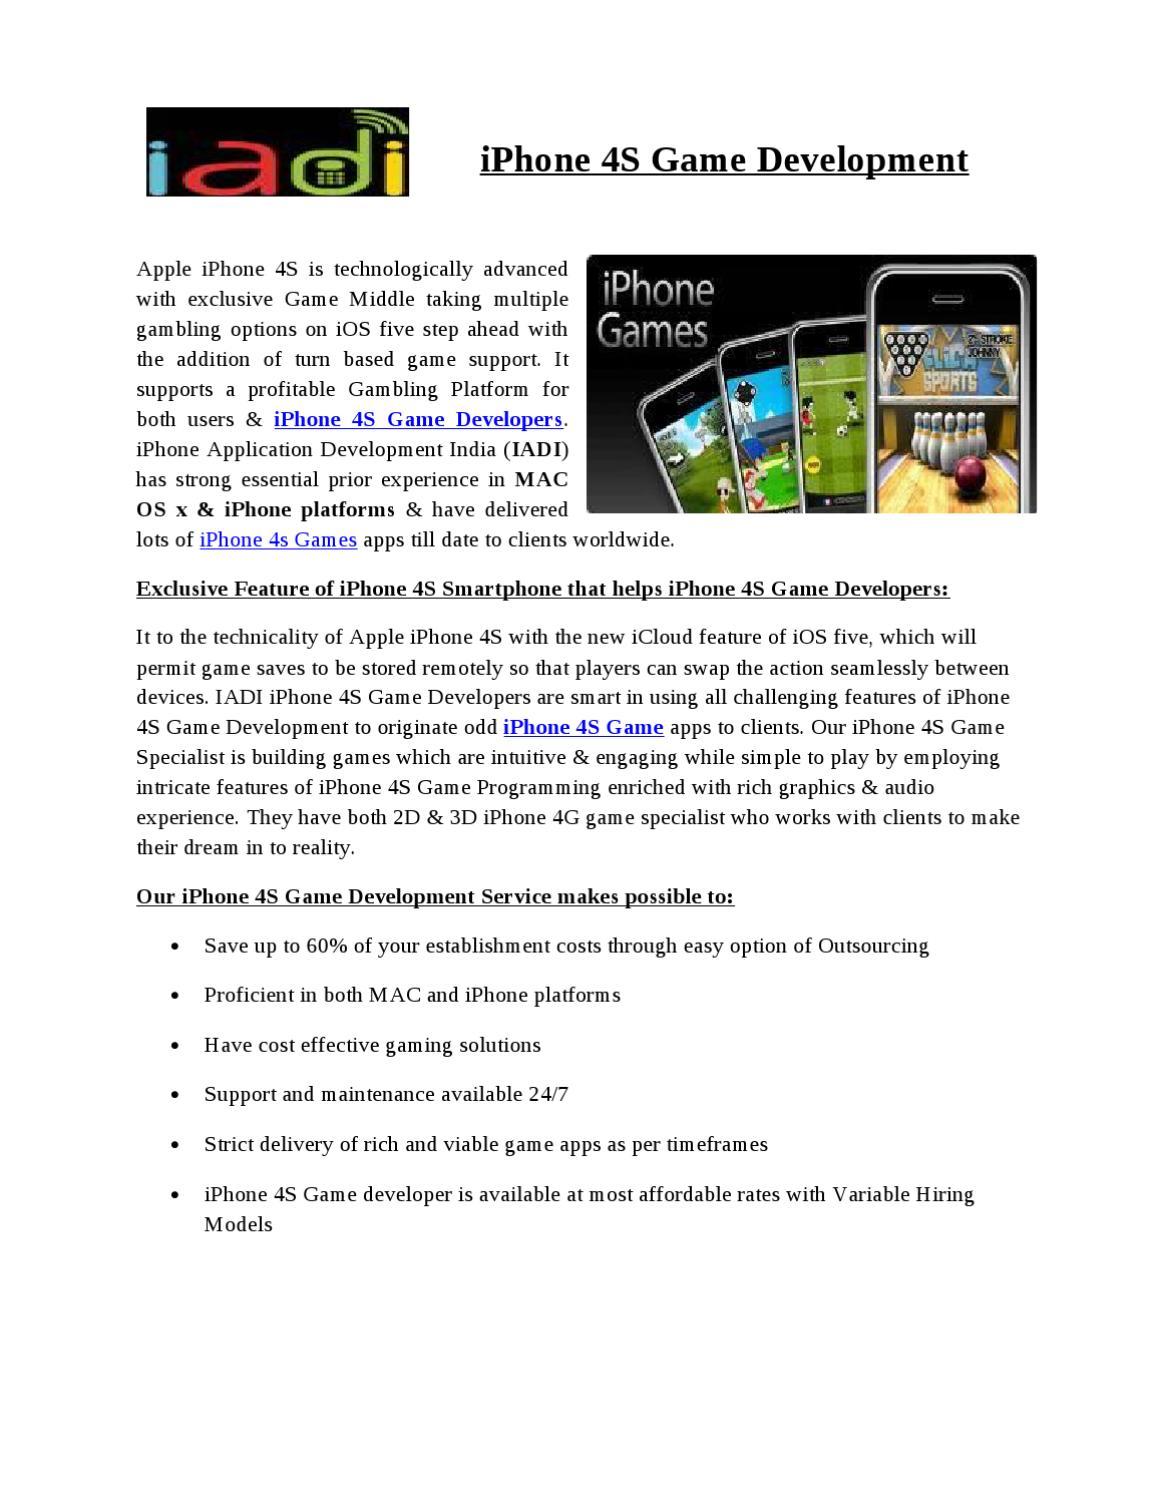 iPhone 4S Game Development by Ryan Lawrence - issuu